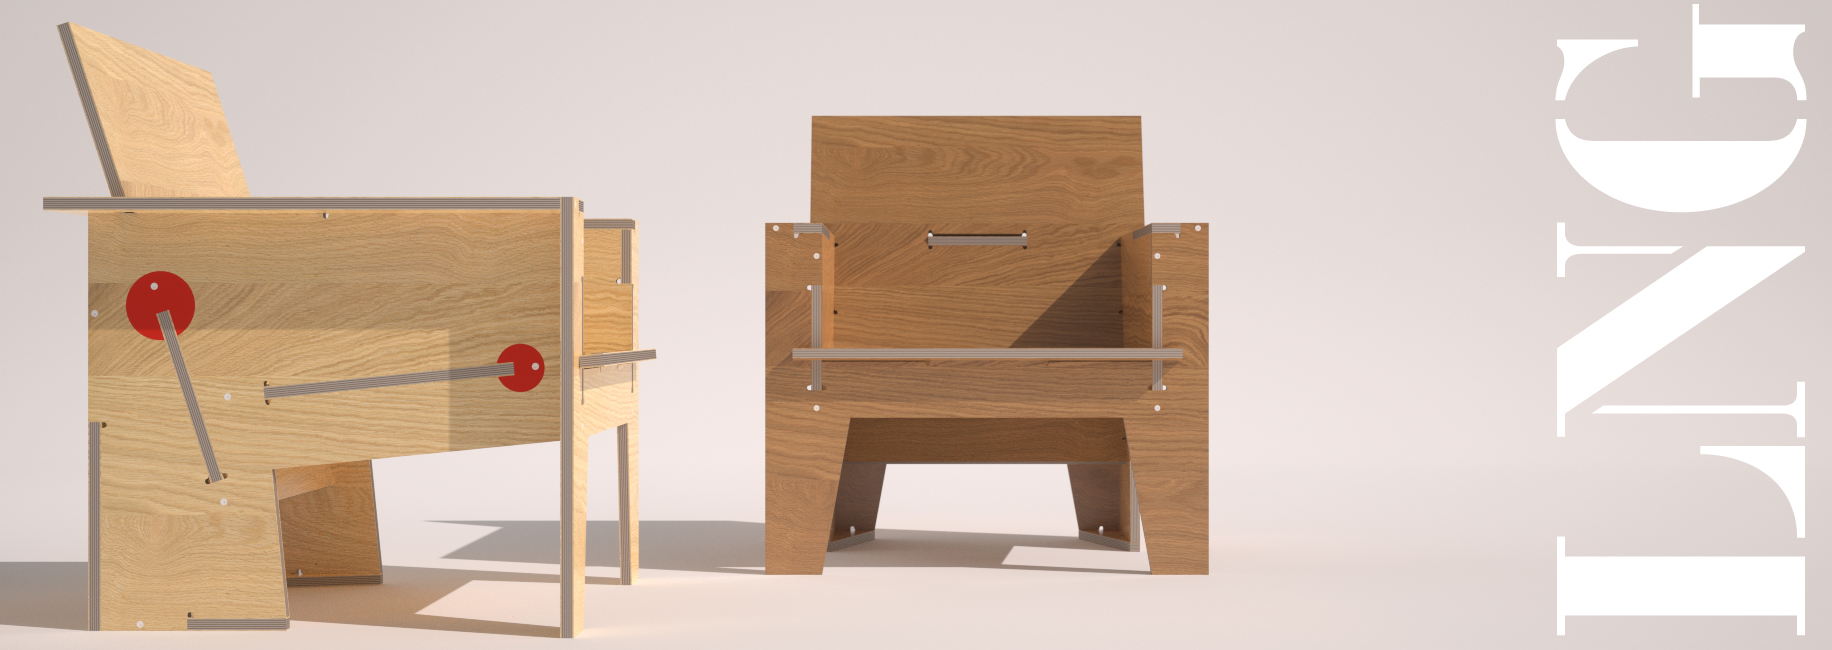 90-minute-lounge-chair